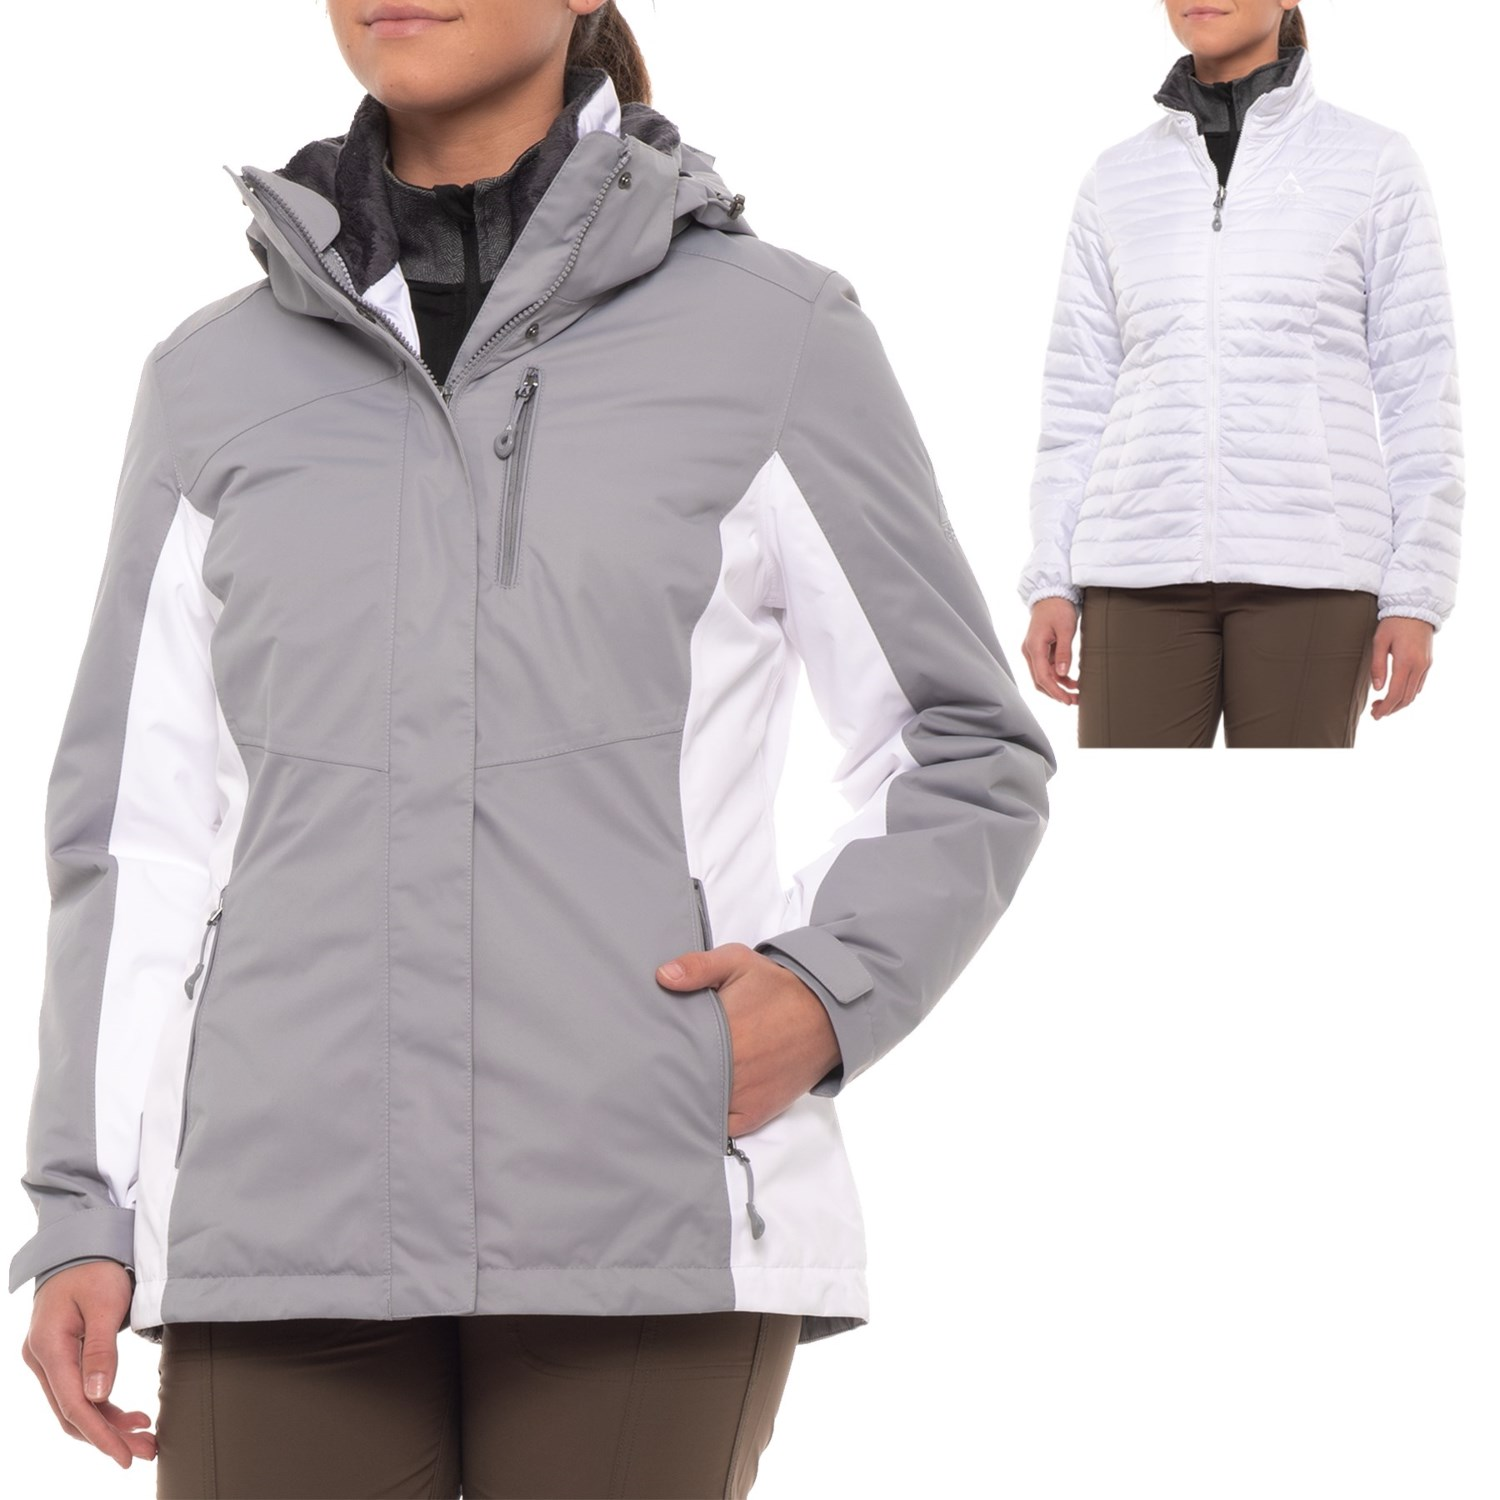 Gerry Bella System Jacket (For Women) - Save 72% 6f1d6601ea27